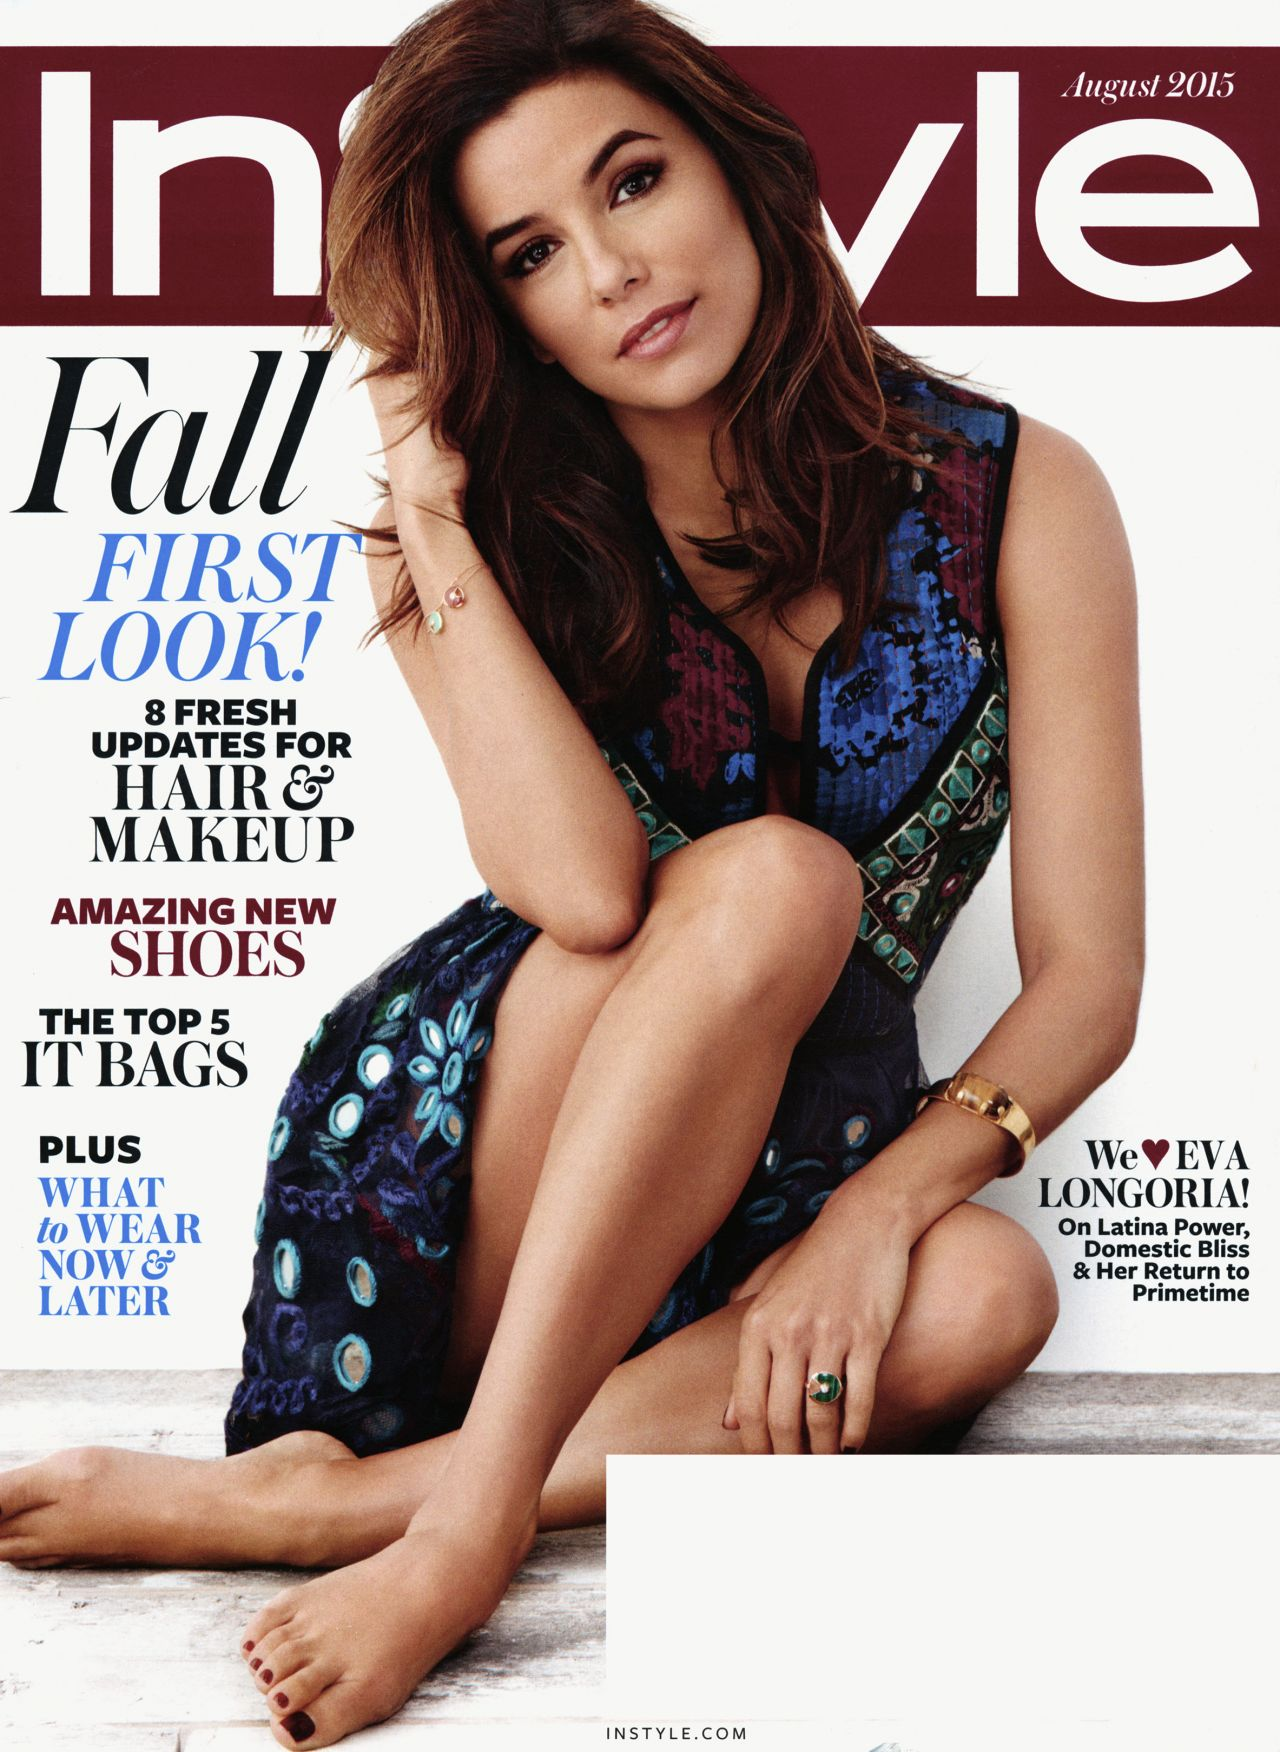 Instyle Magazine Us: InStyle Magazine August 2015 Issue